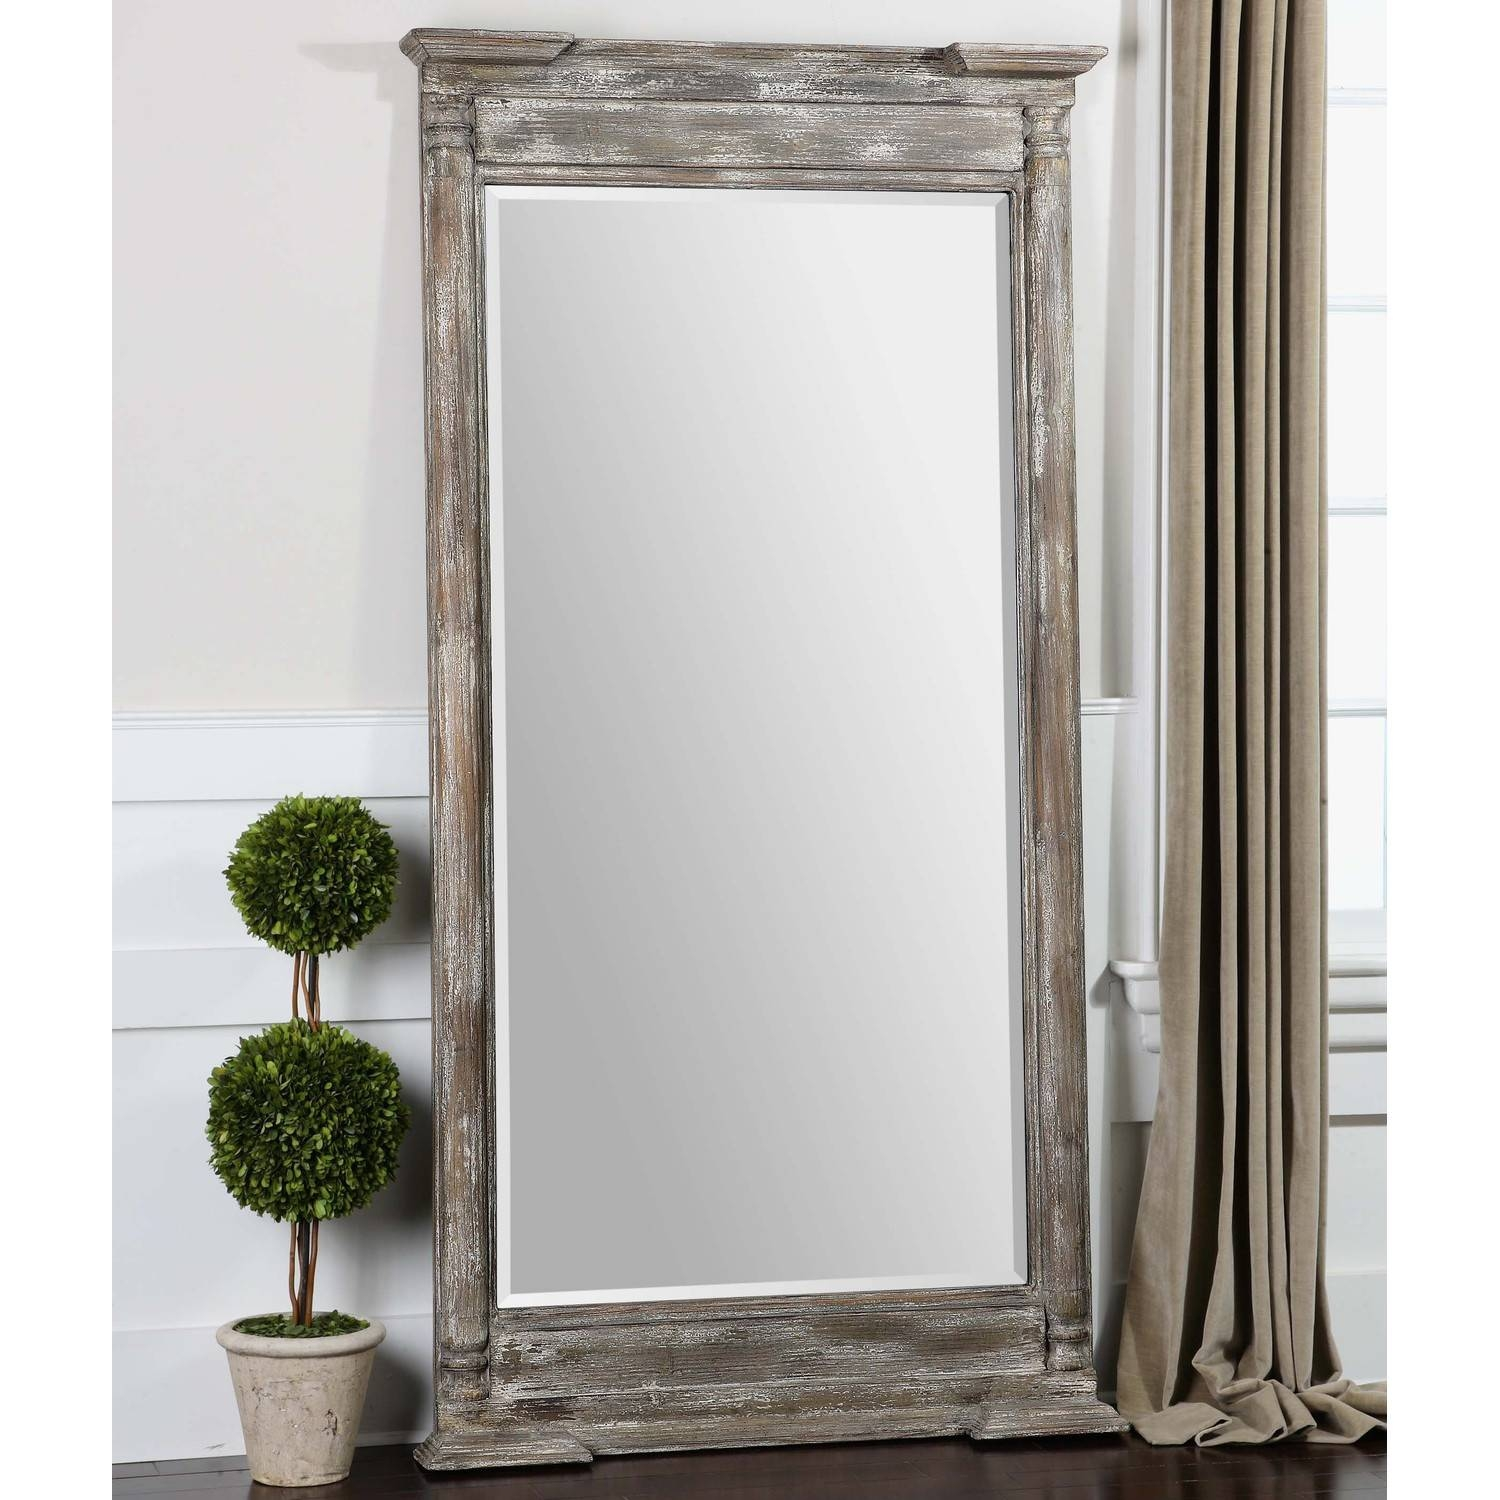 Shabby Chic Floor Mirror 147 Stunning Decor With Extra Large for French Floor Mirrors (Image 19 of 25)